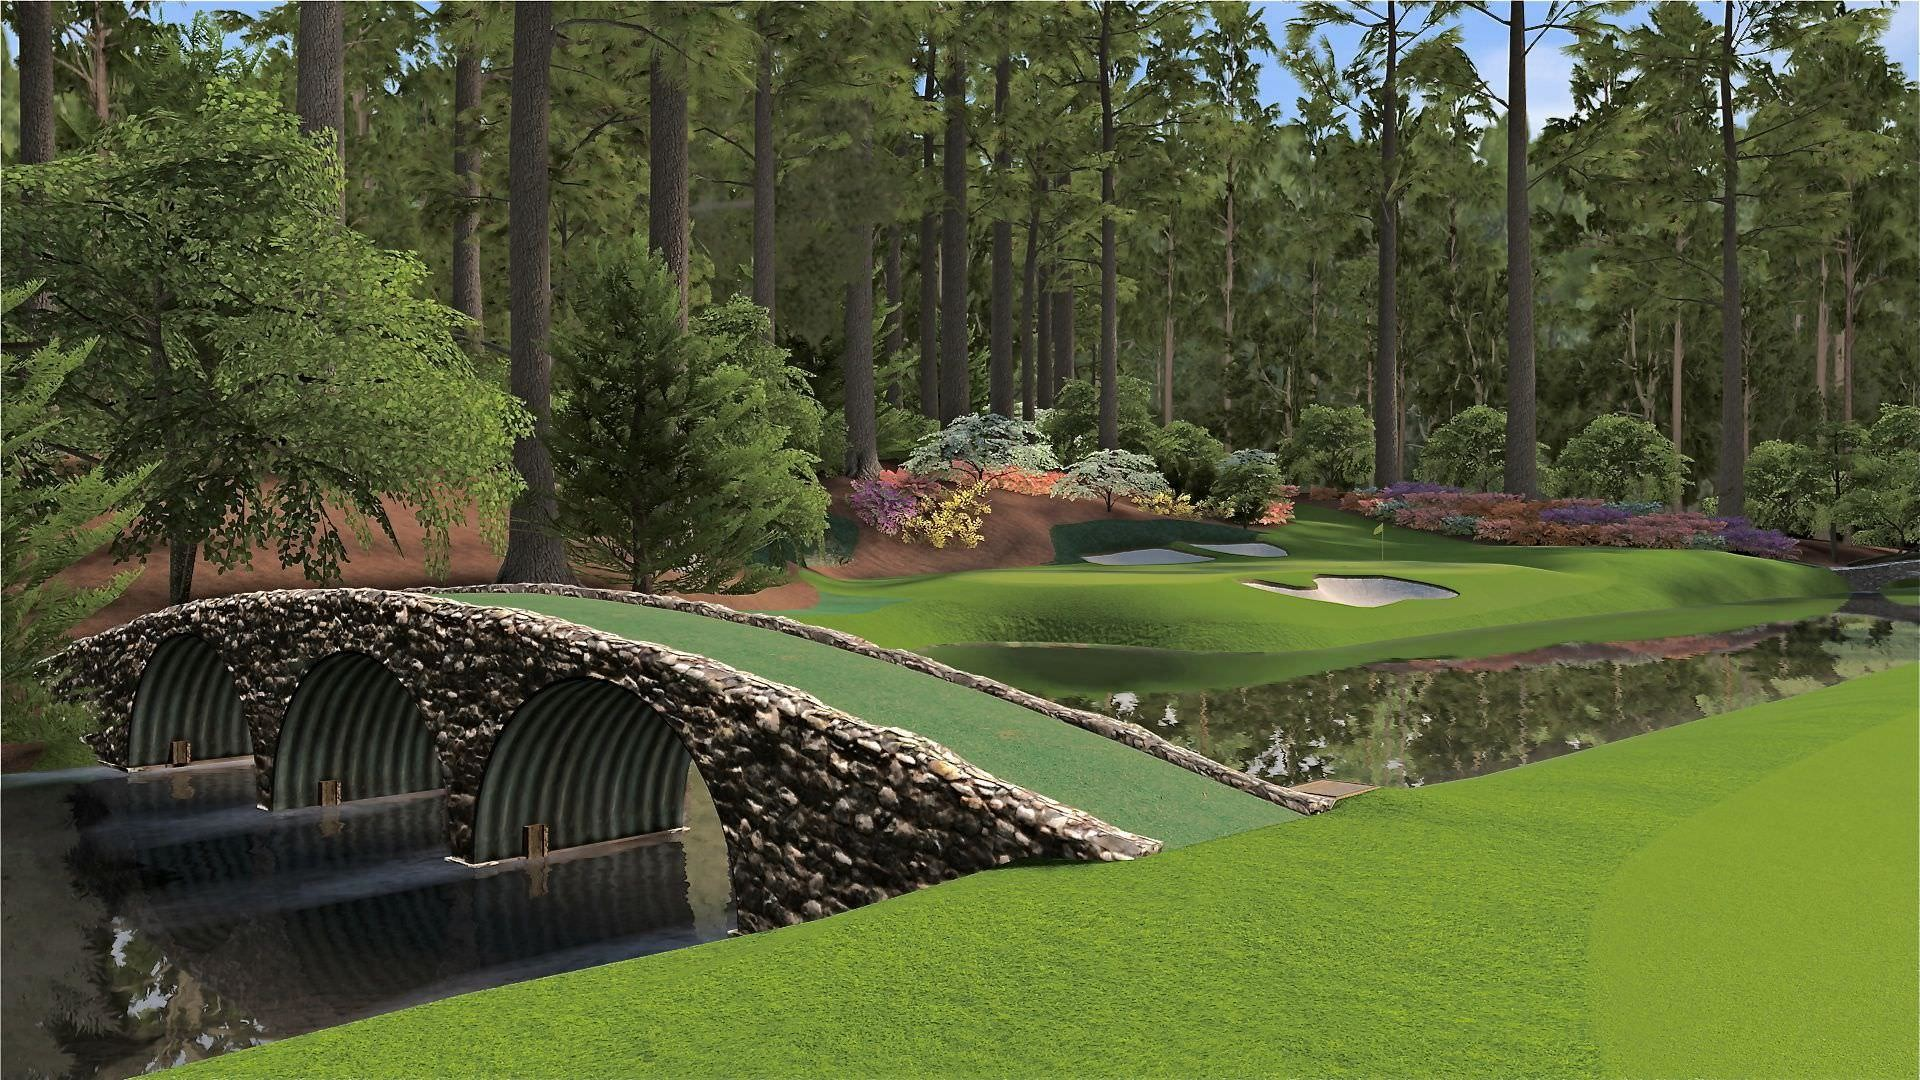 Augusta National Wallpaper HD 60 images 1920x1080